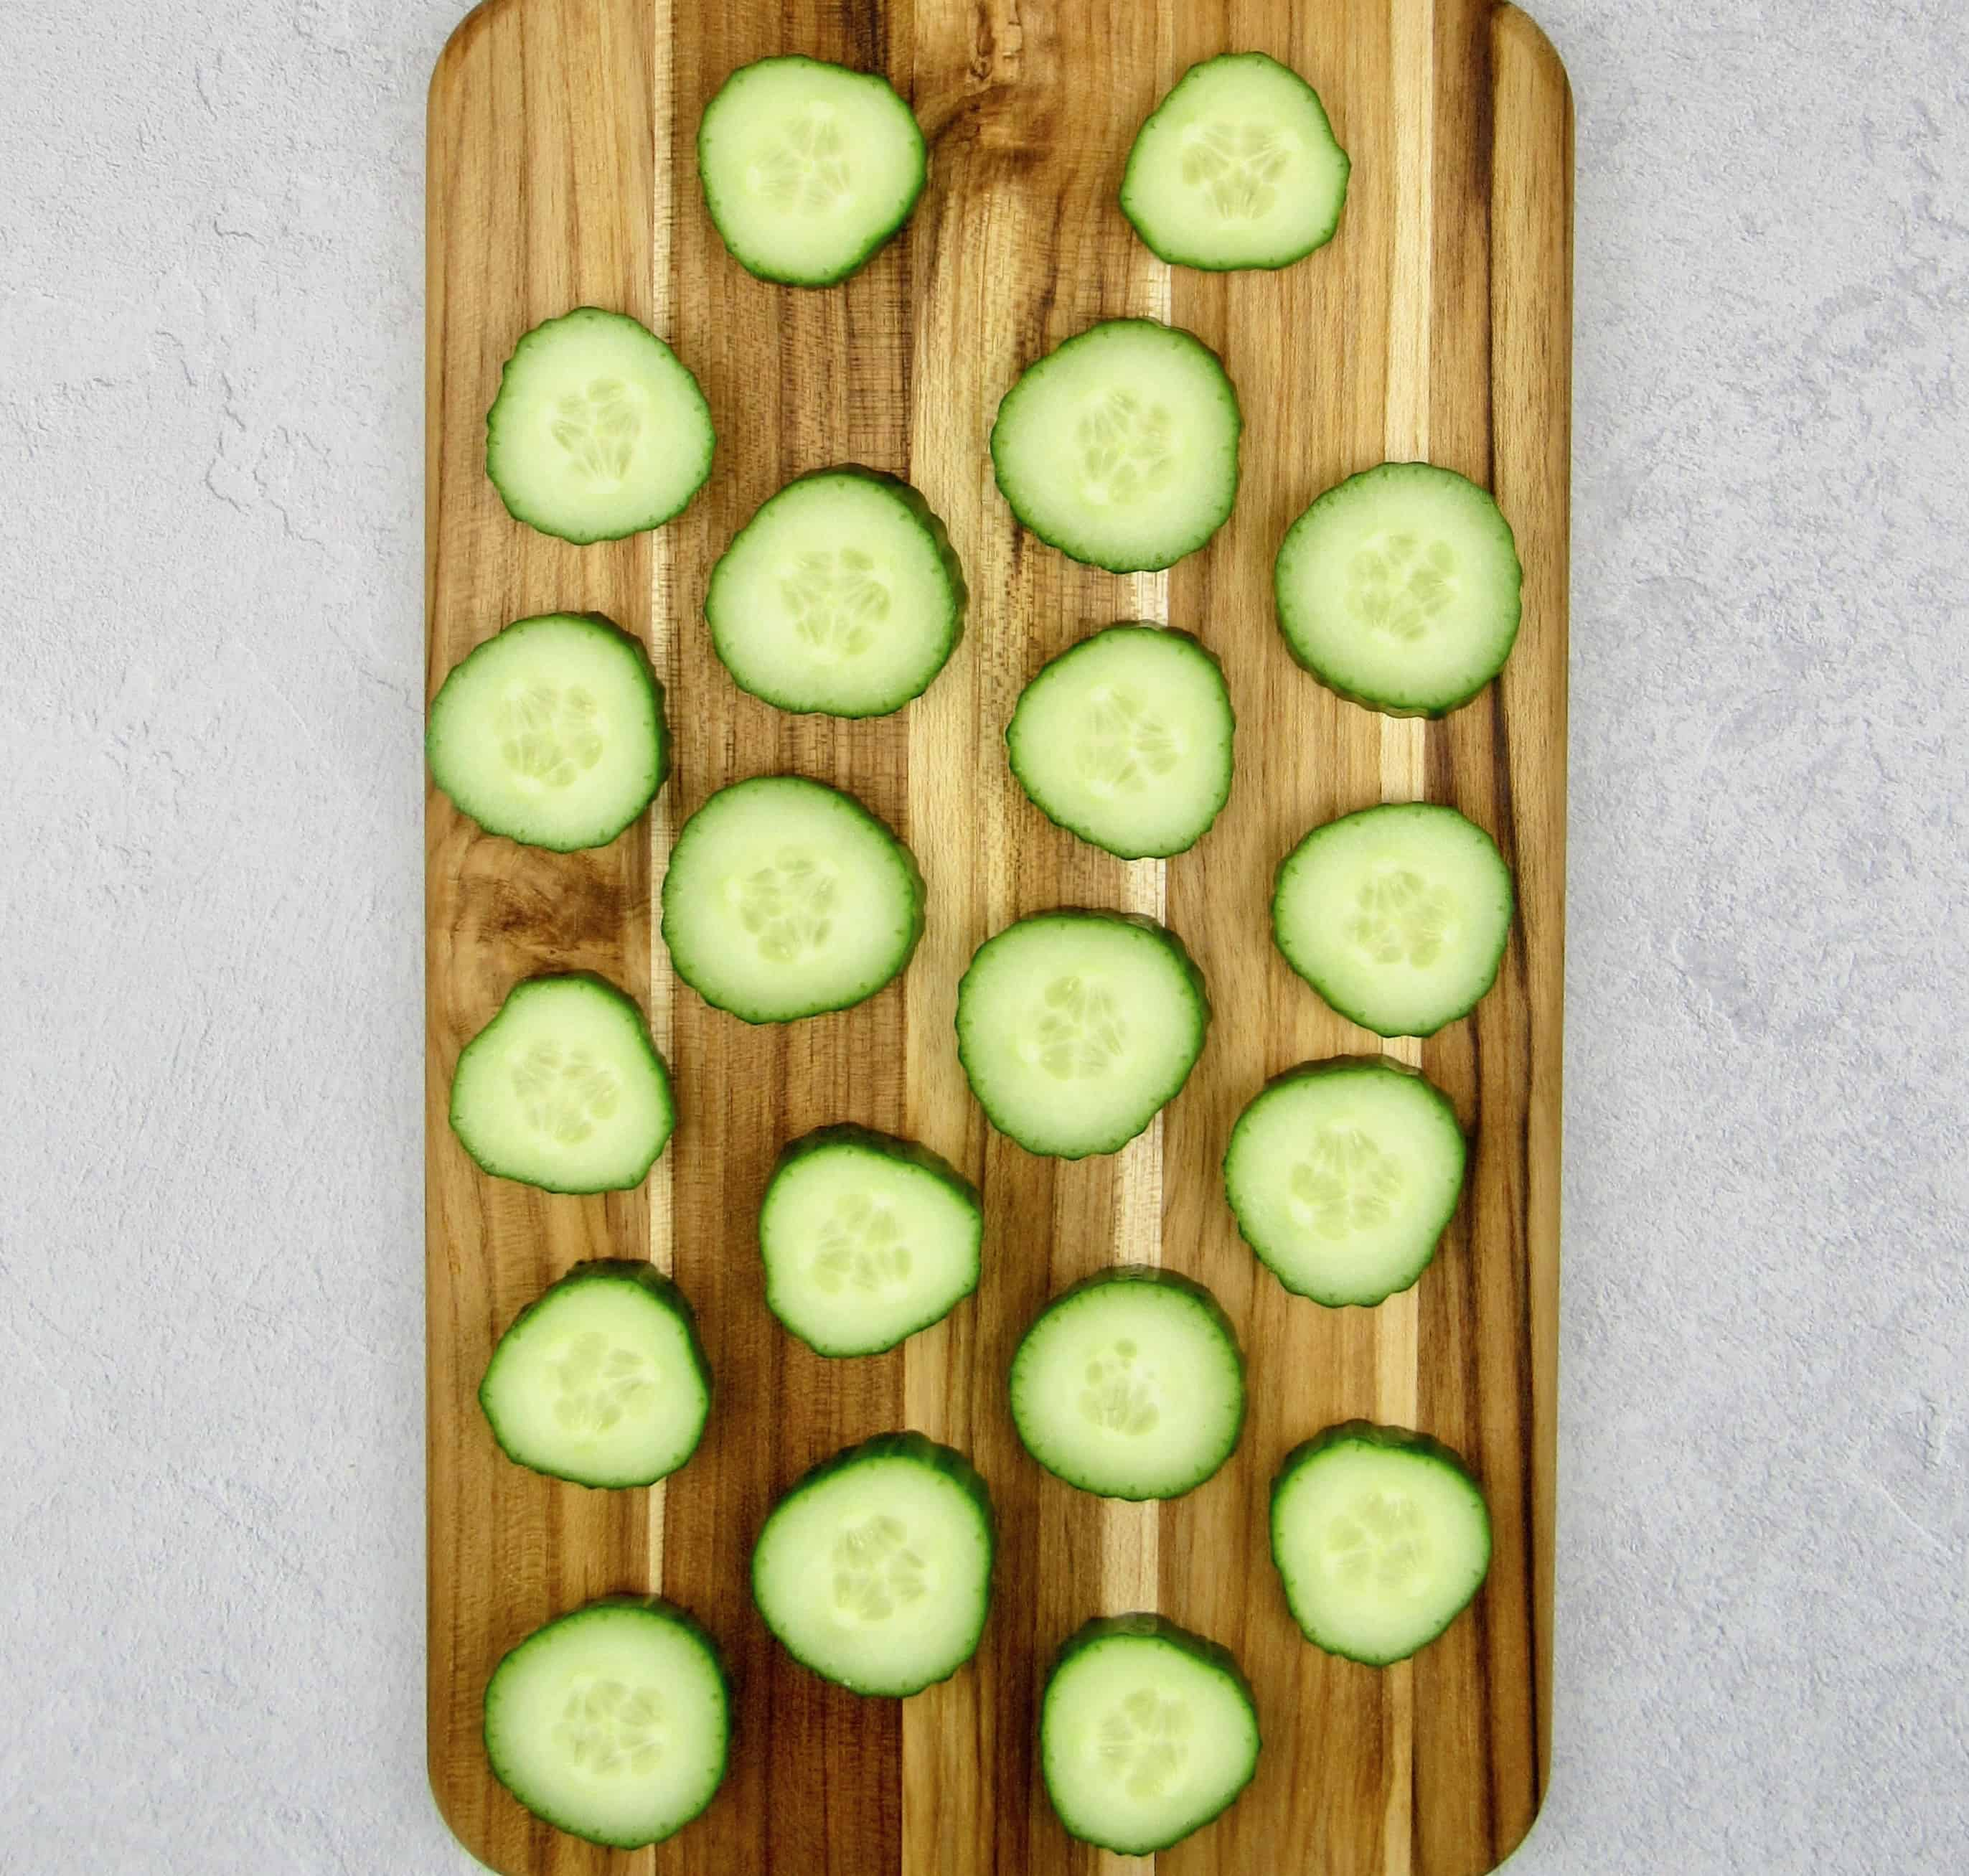 20 slices of cucumber on cutting board